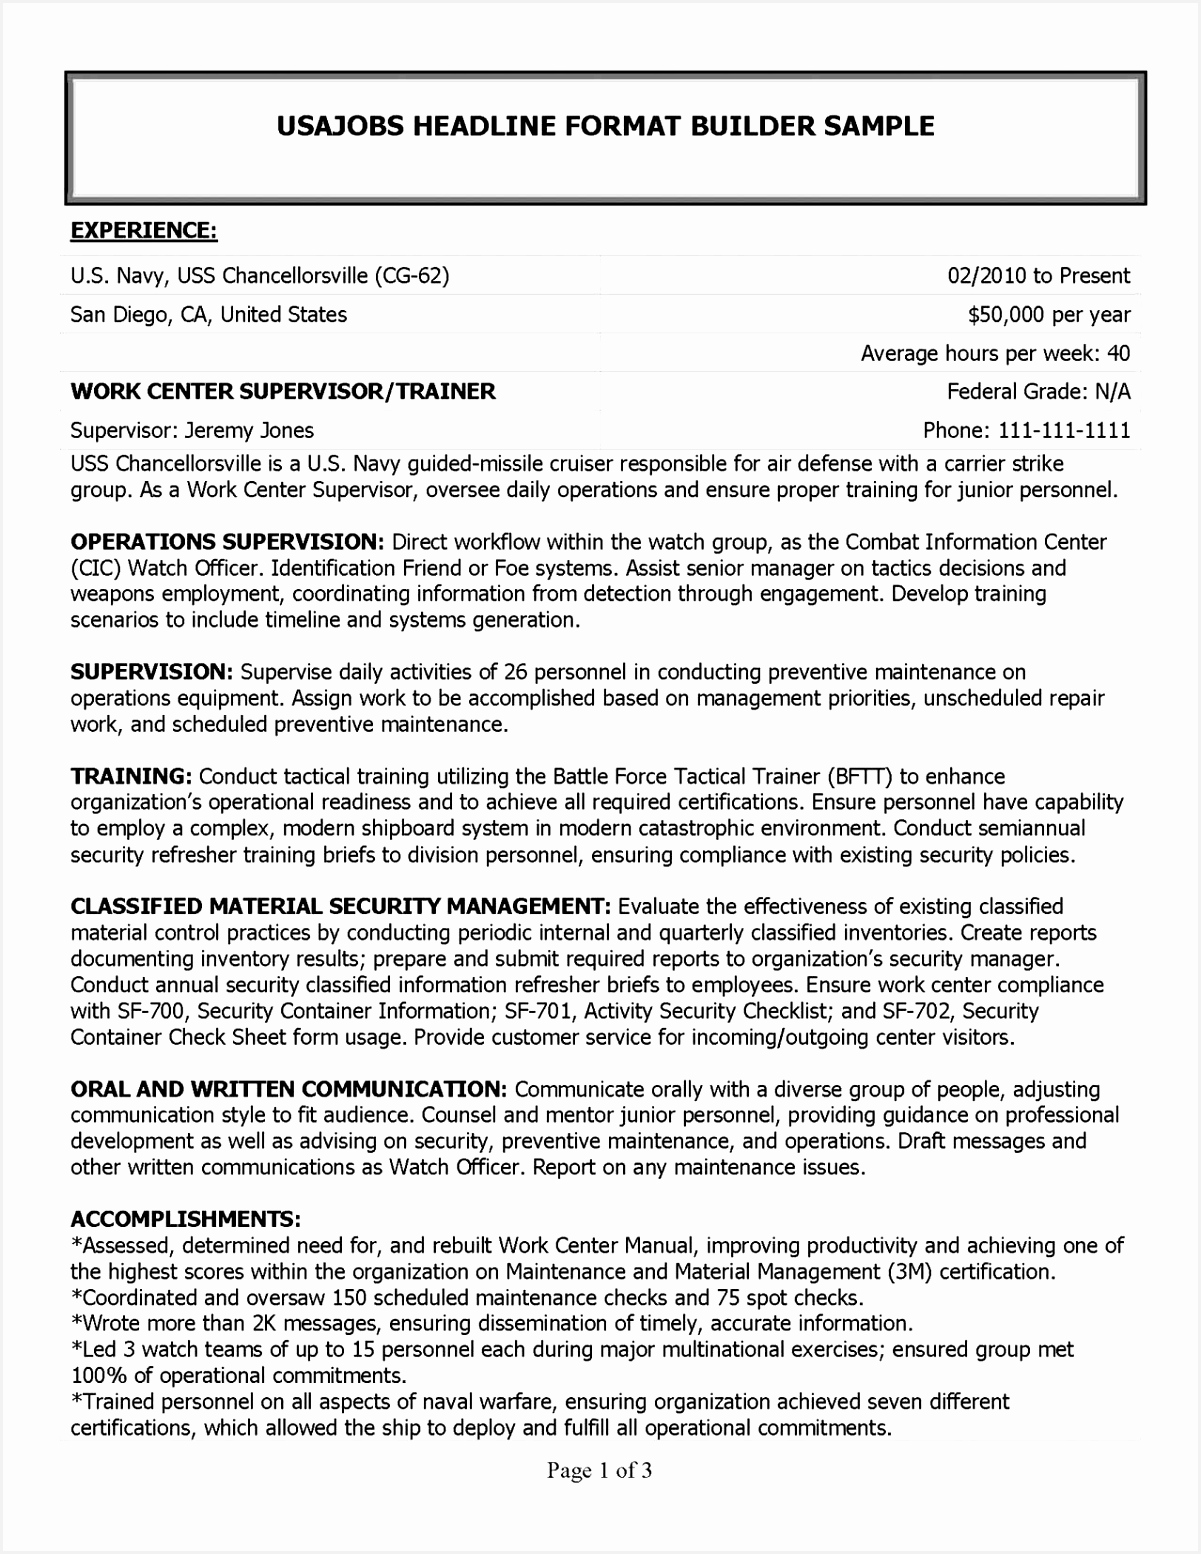 Examples Resumes for Jobs Avdlc Luxury Supply Chain Resume Examples Staggering Example Job Resume Awesome15541201